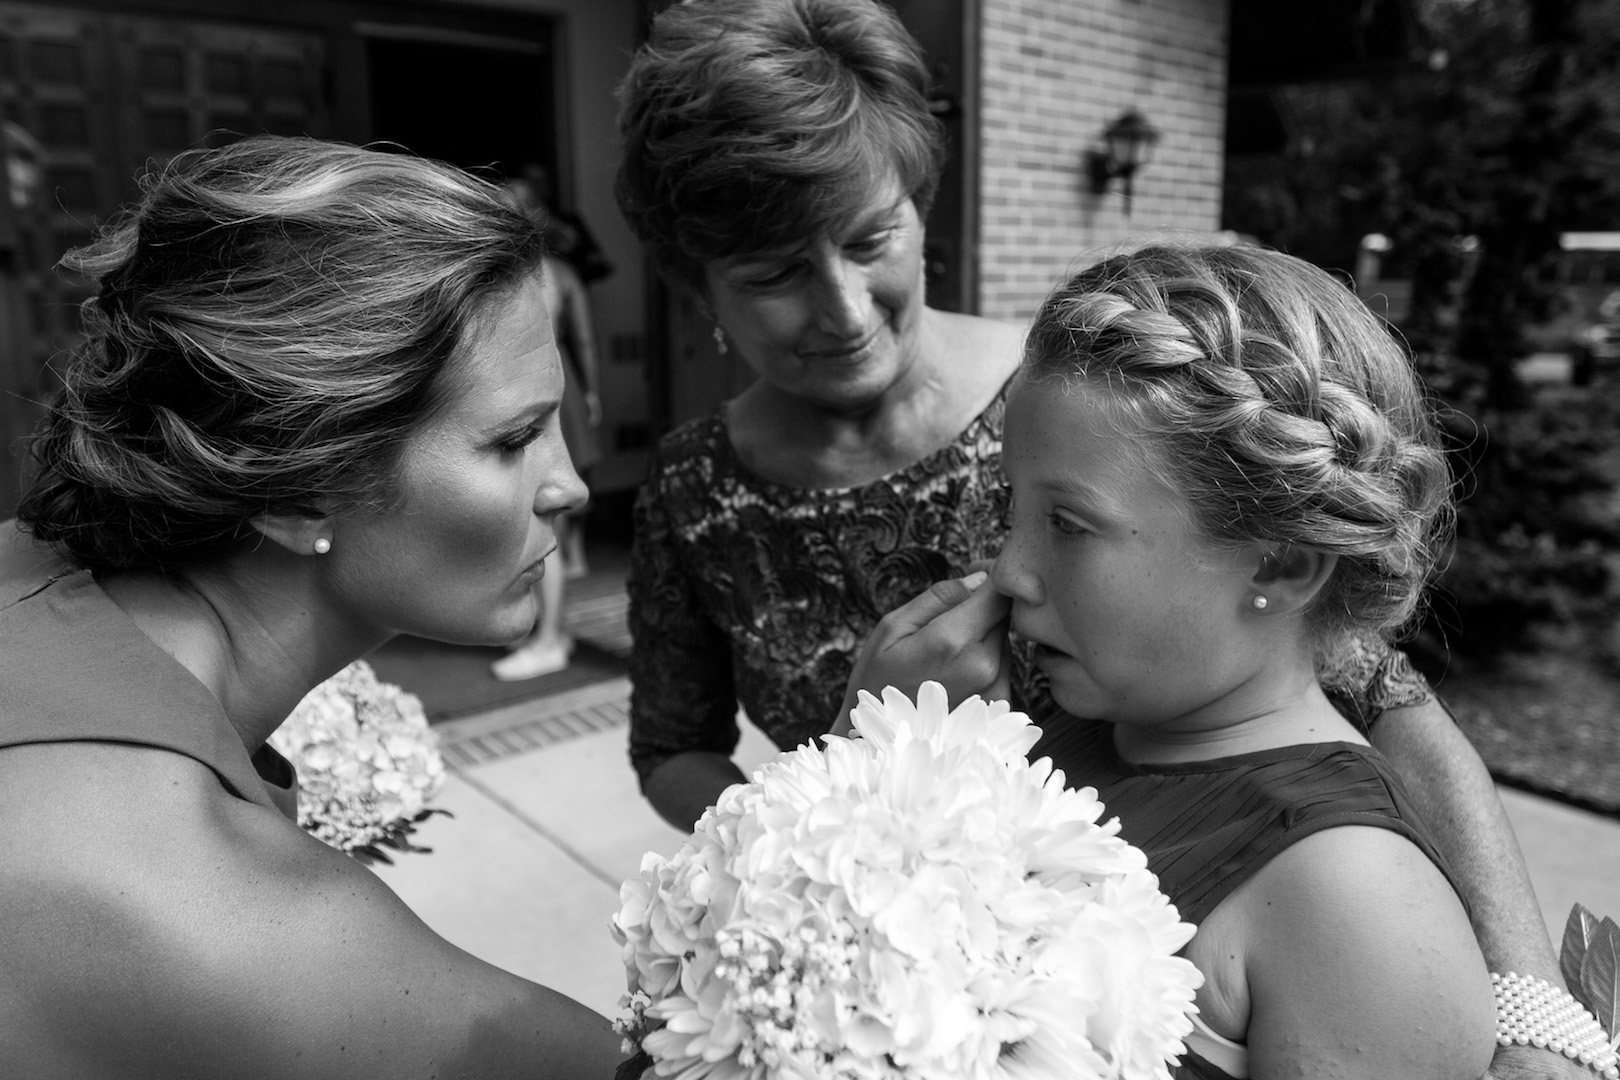 The tears of the bride's sister